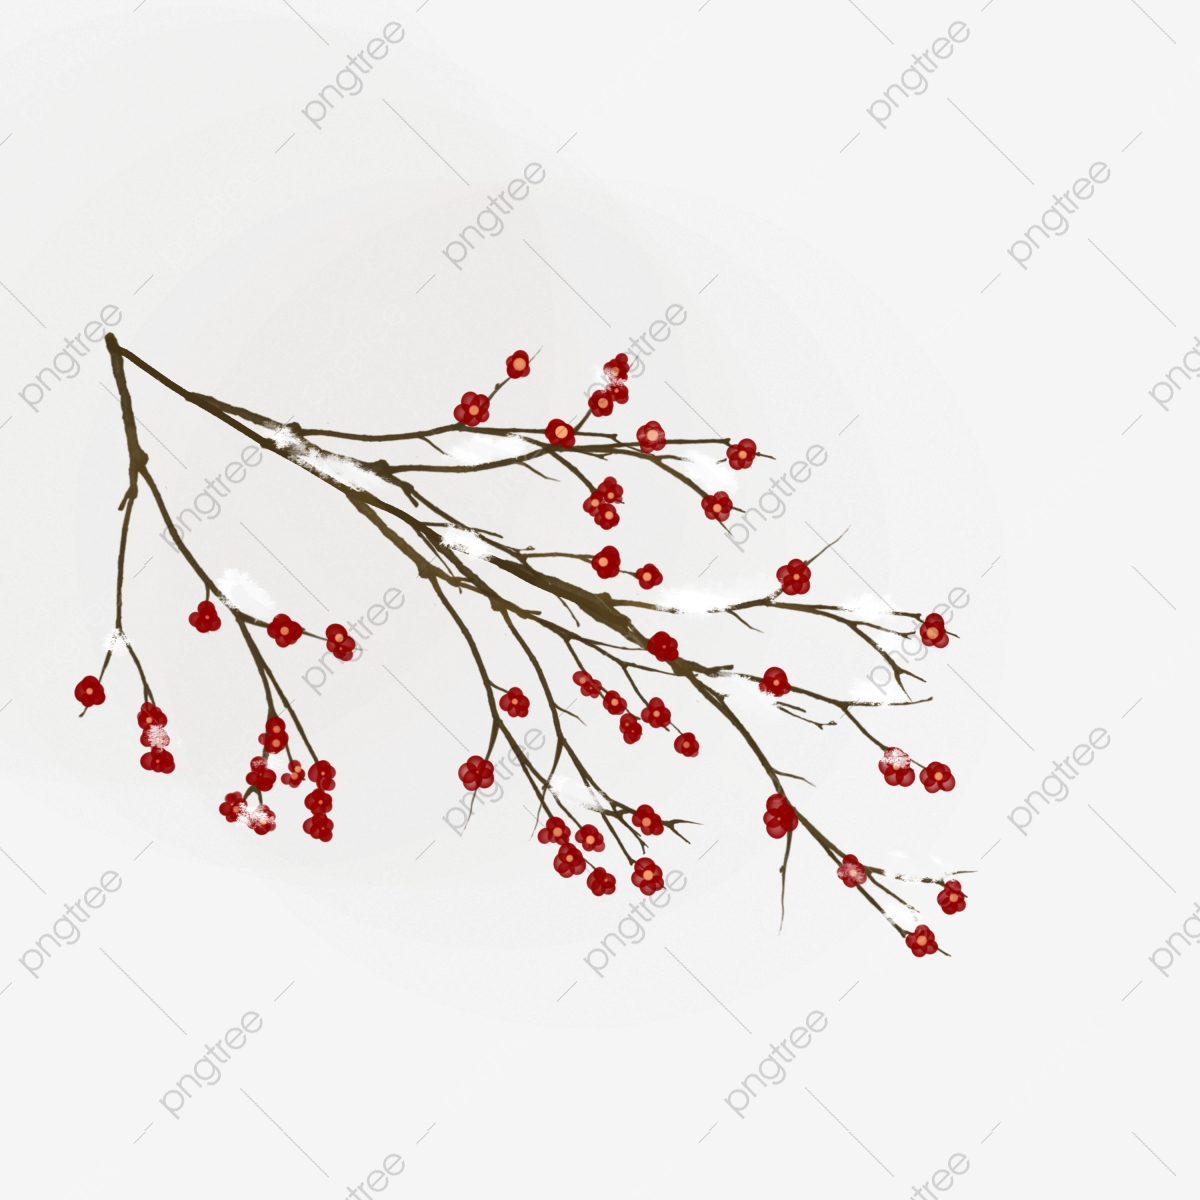 Hand Drawn Branches With Red Fruits Winter Branches Branches Without Leaves Cartoon Tree Branch Branch Clipart Branches In The Snow Winter Branches Png Transparent Clipart Image And Psd File For Free Download Alibaba.com offers 371 xmas tree cartoon products. https pngtree com freepng hand drawn branches with red fruits winter branches branches without leaves cartoon tree branch 3895316 html